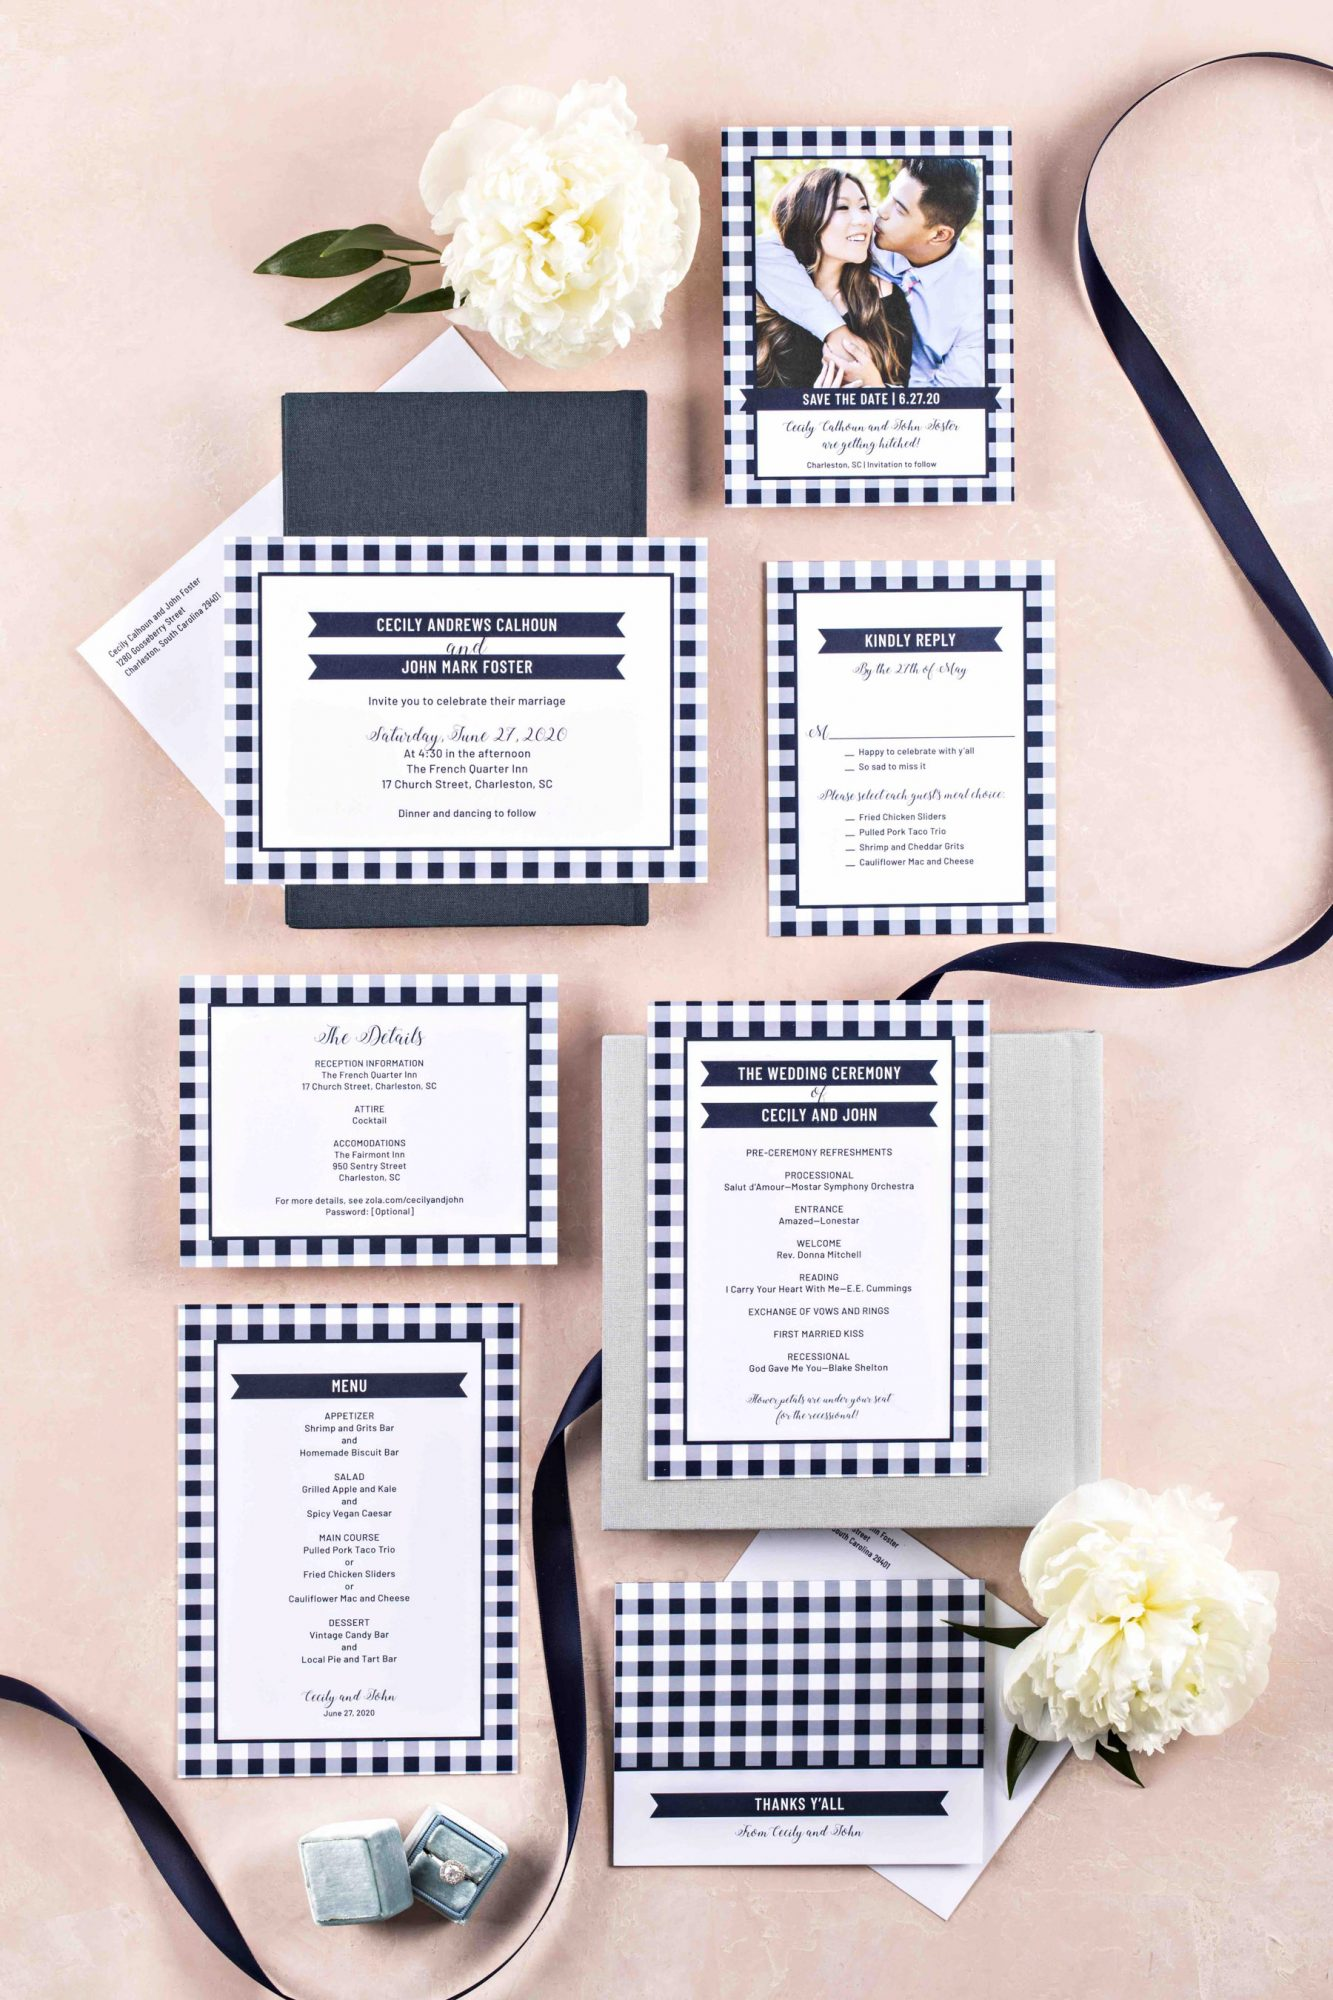 Invites_Draper_James_flatlay_01